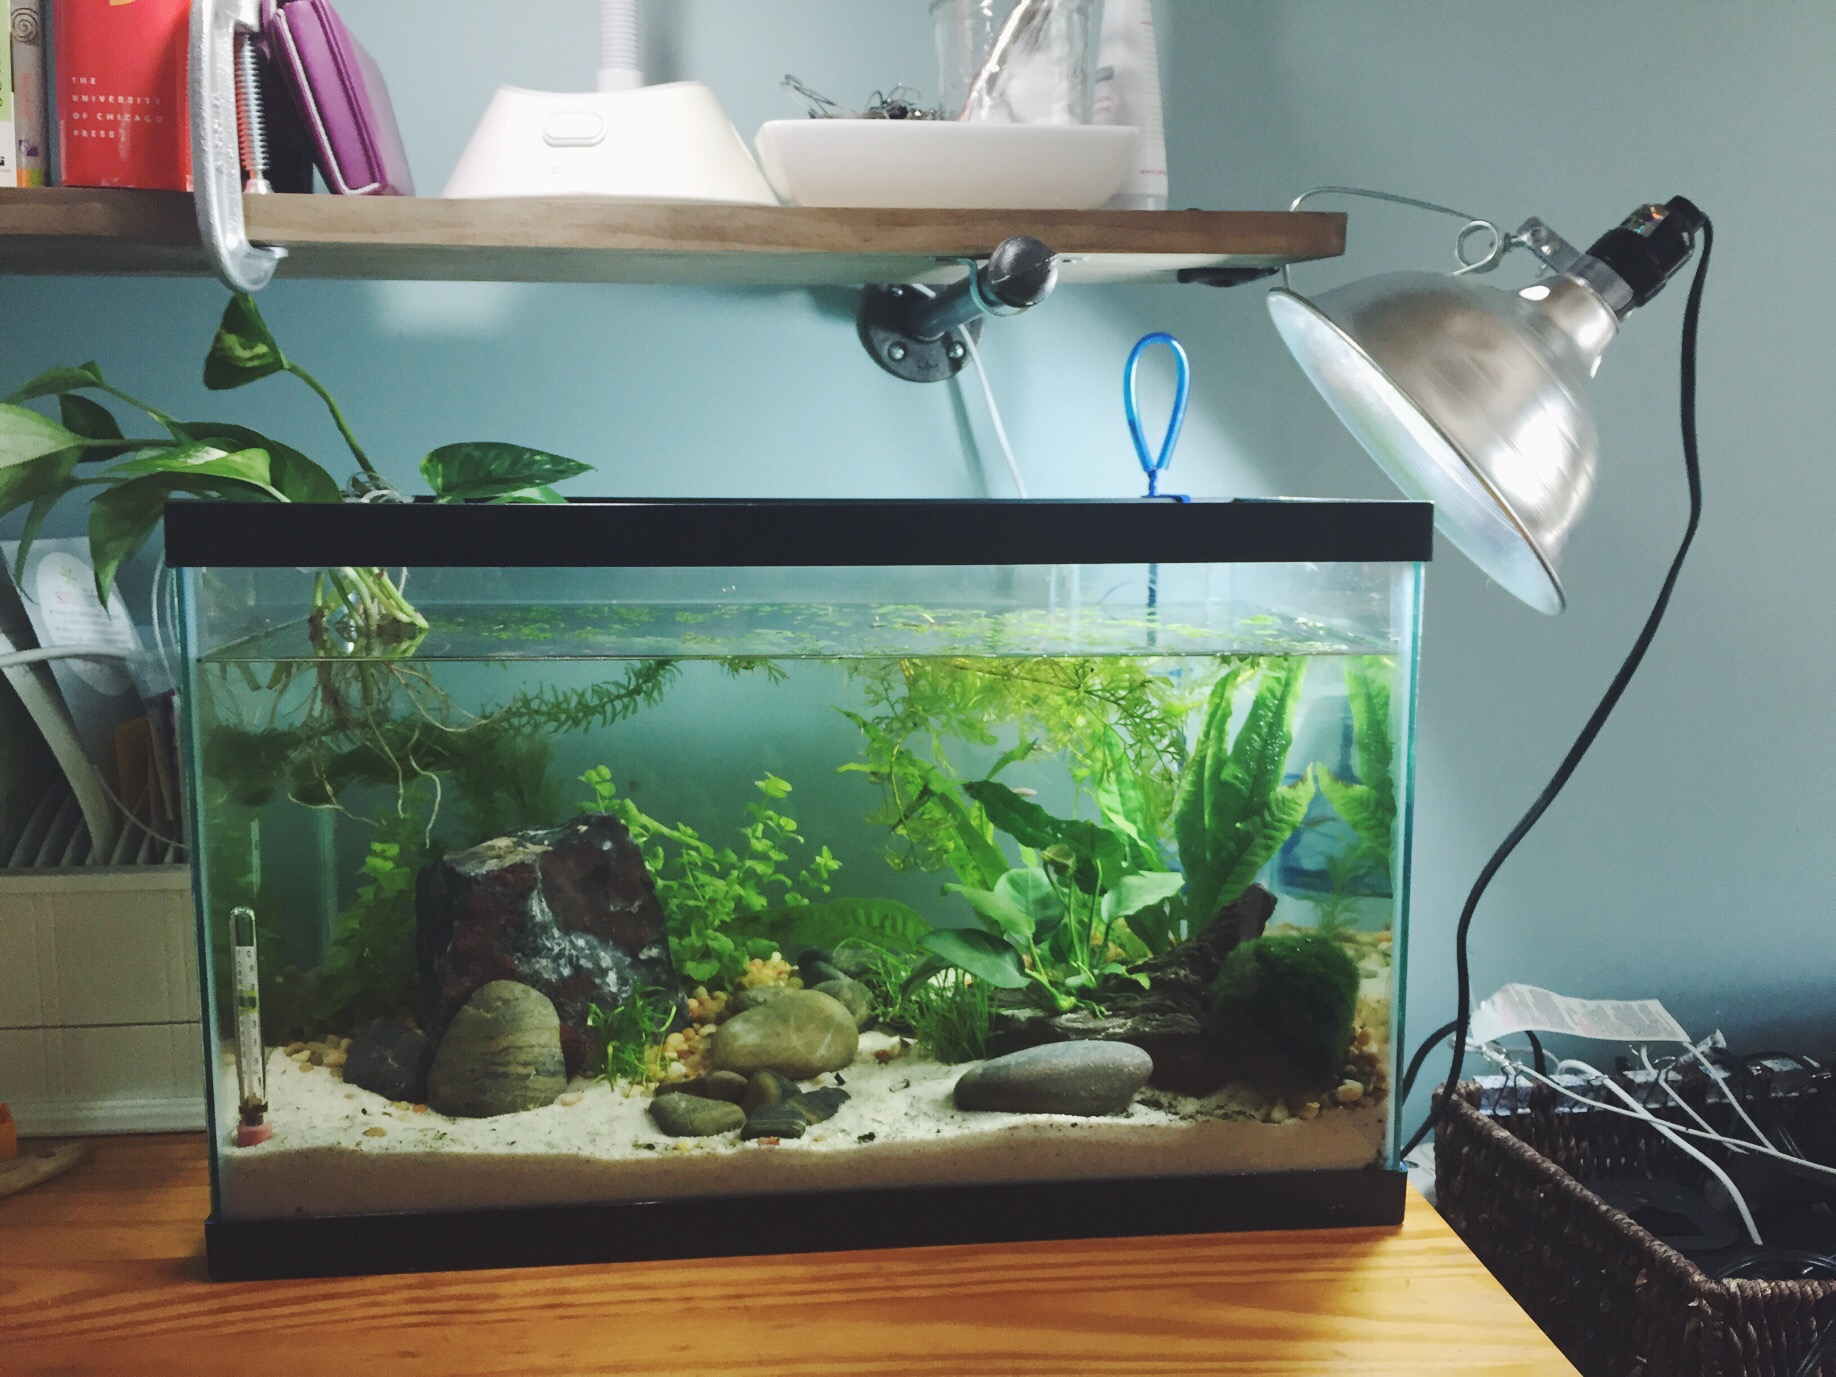 Aquarium fish tank reading - So After Reading A Ton About Planted Tanks And Walstad Tanks In Particular I Realized The Reason I Never Really Got Any Readings For Nitrites And Nitrates